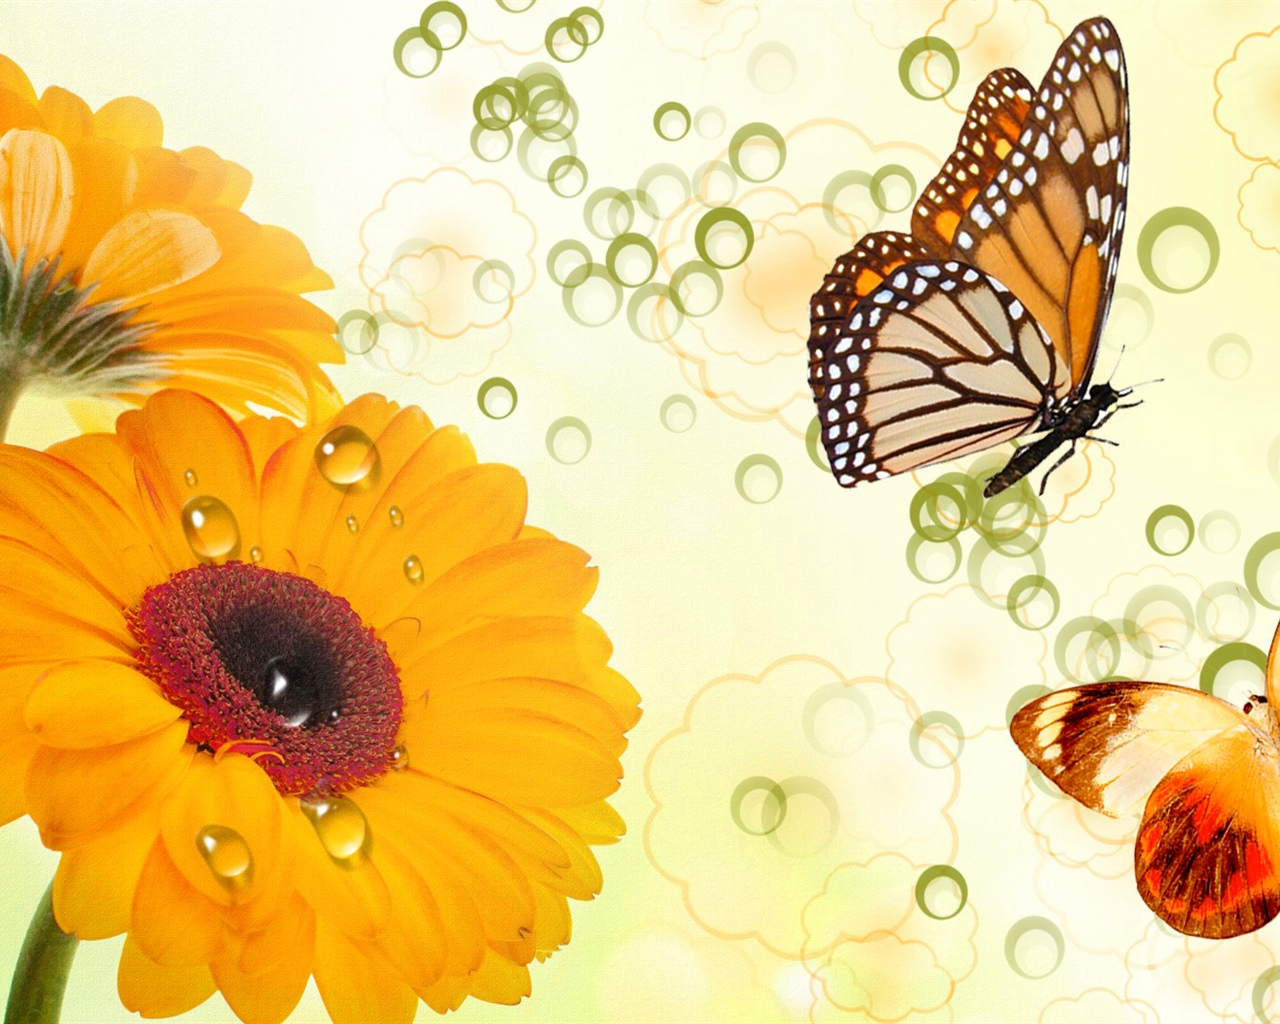 Yellow flowers and butterflies, creative design 1280x1024 wallpaper